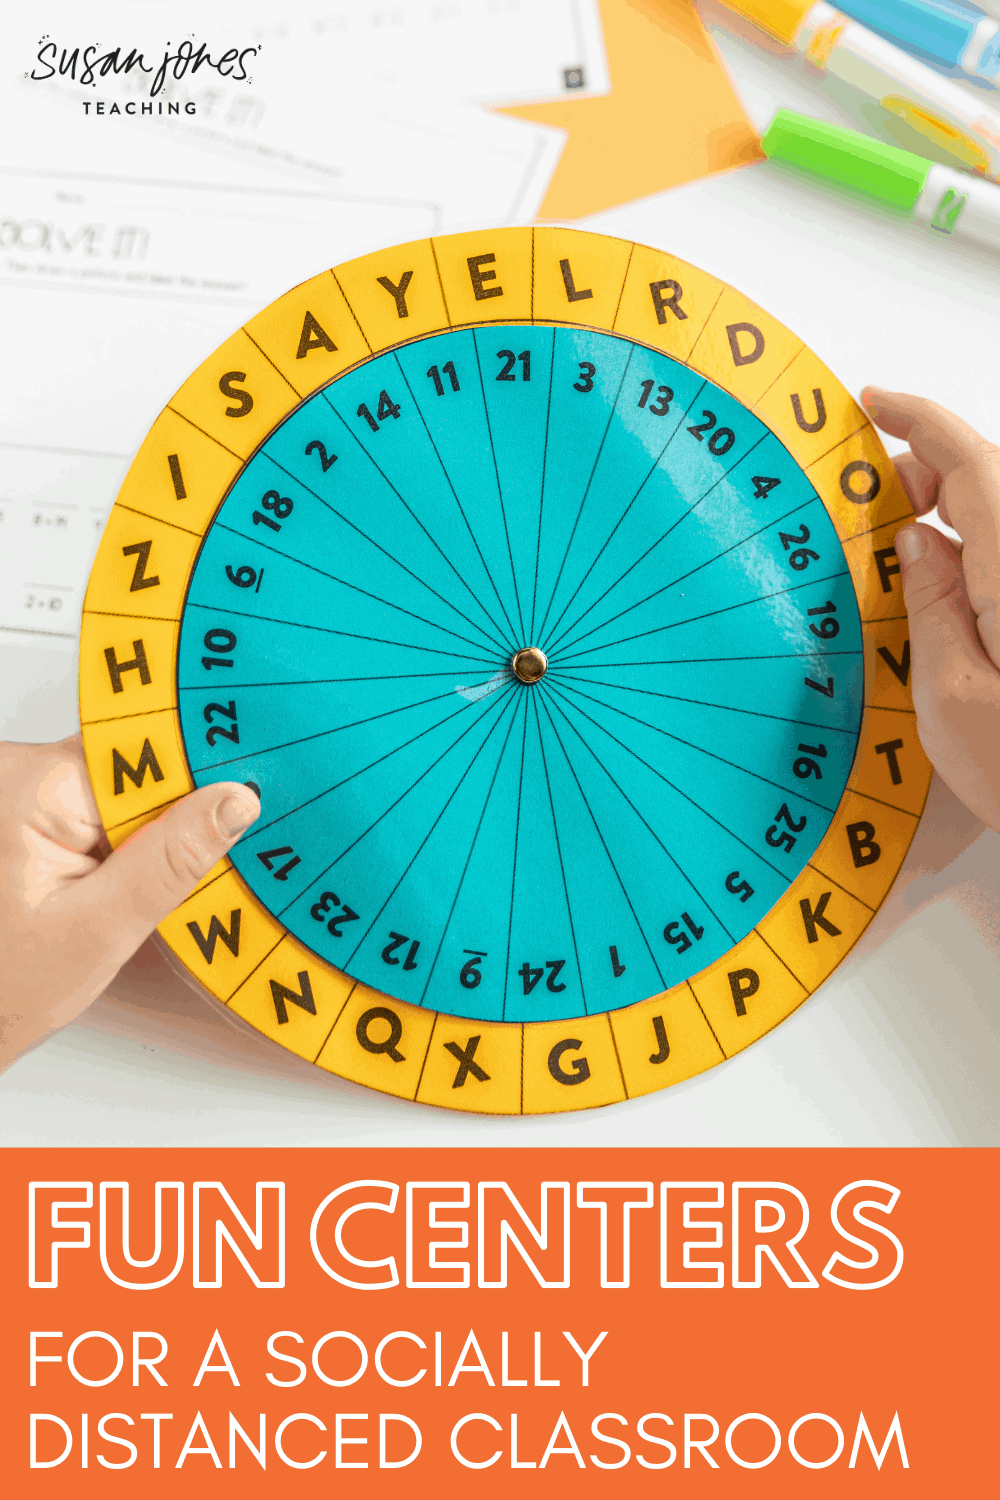 Setting up a socially distanced classroom? Here are some tips for how to run centers in a K-2 classroom and some ideas for fun individual centers to use!